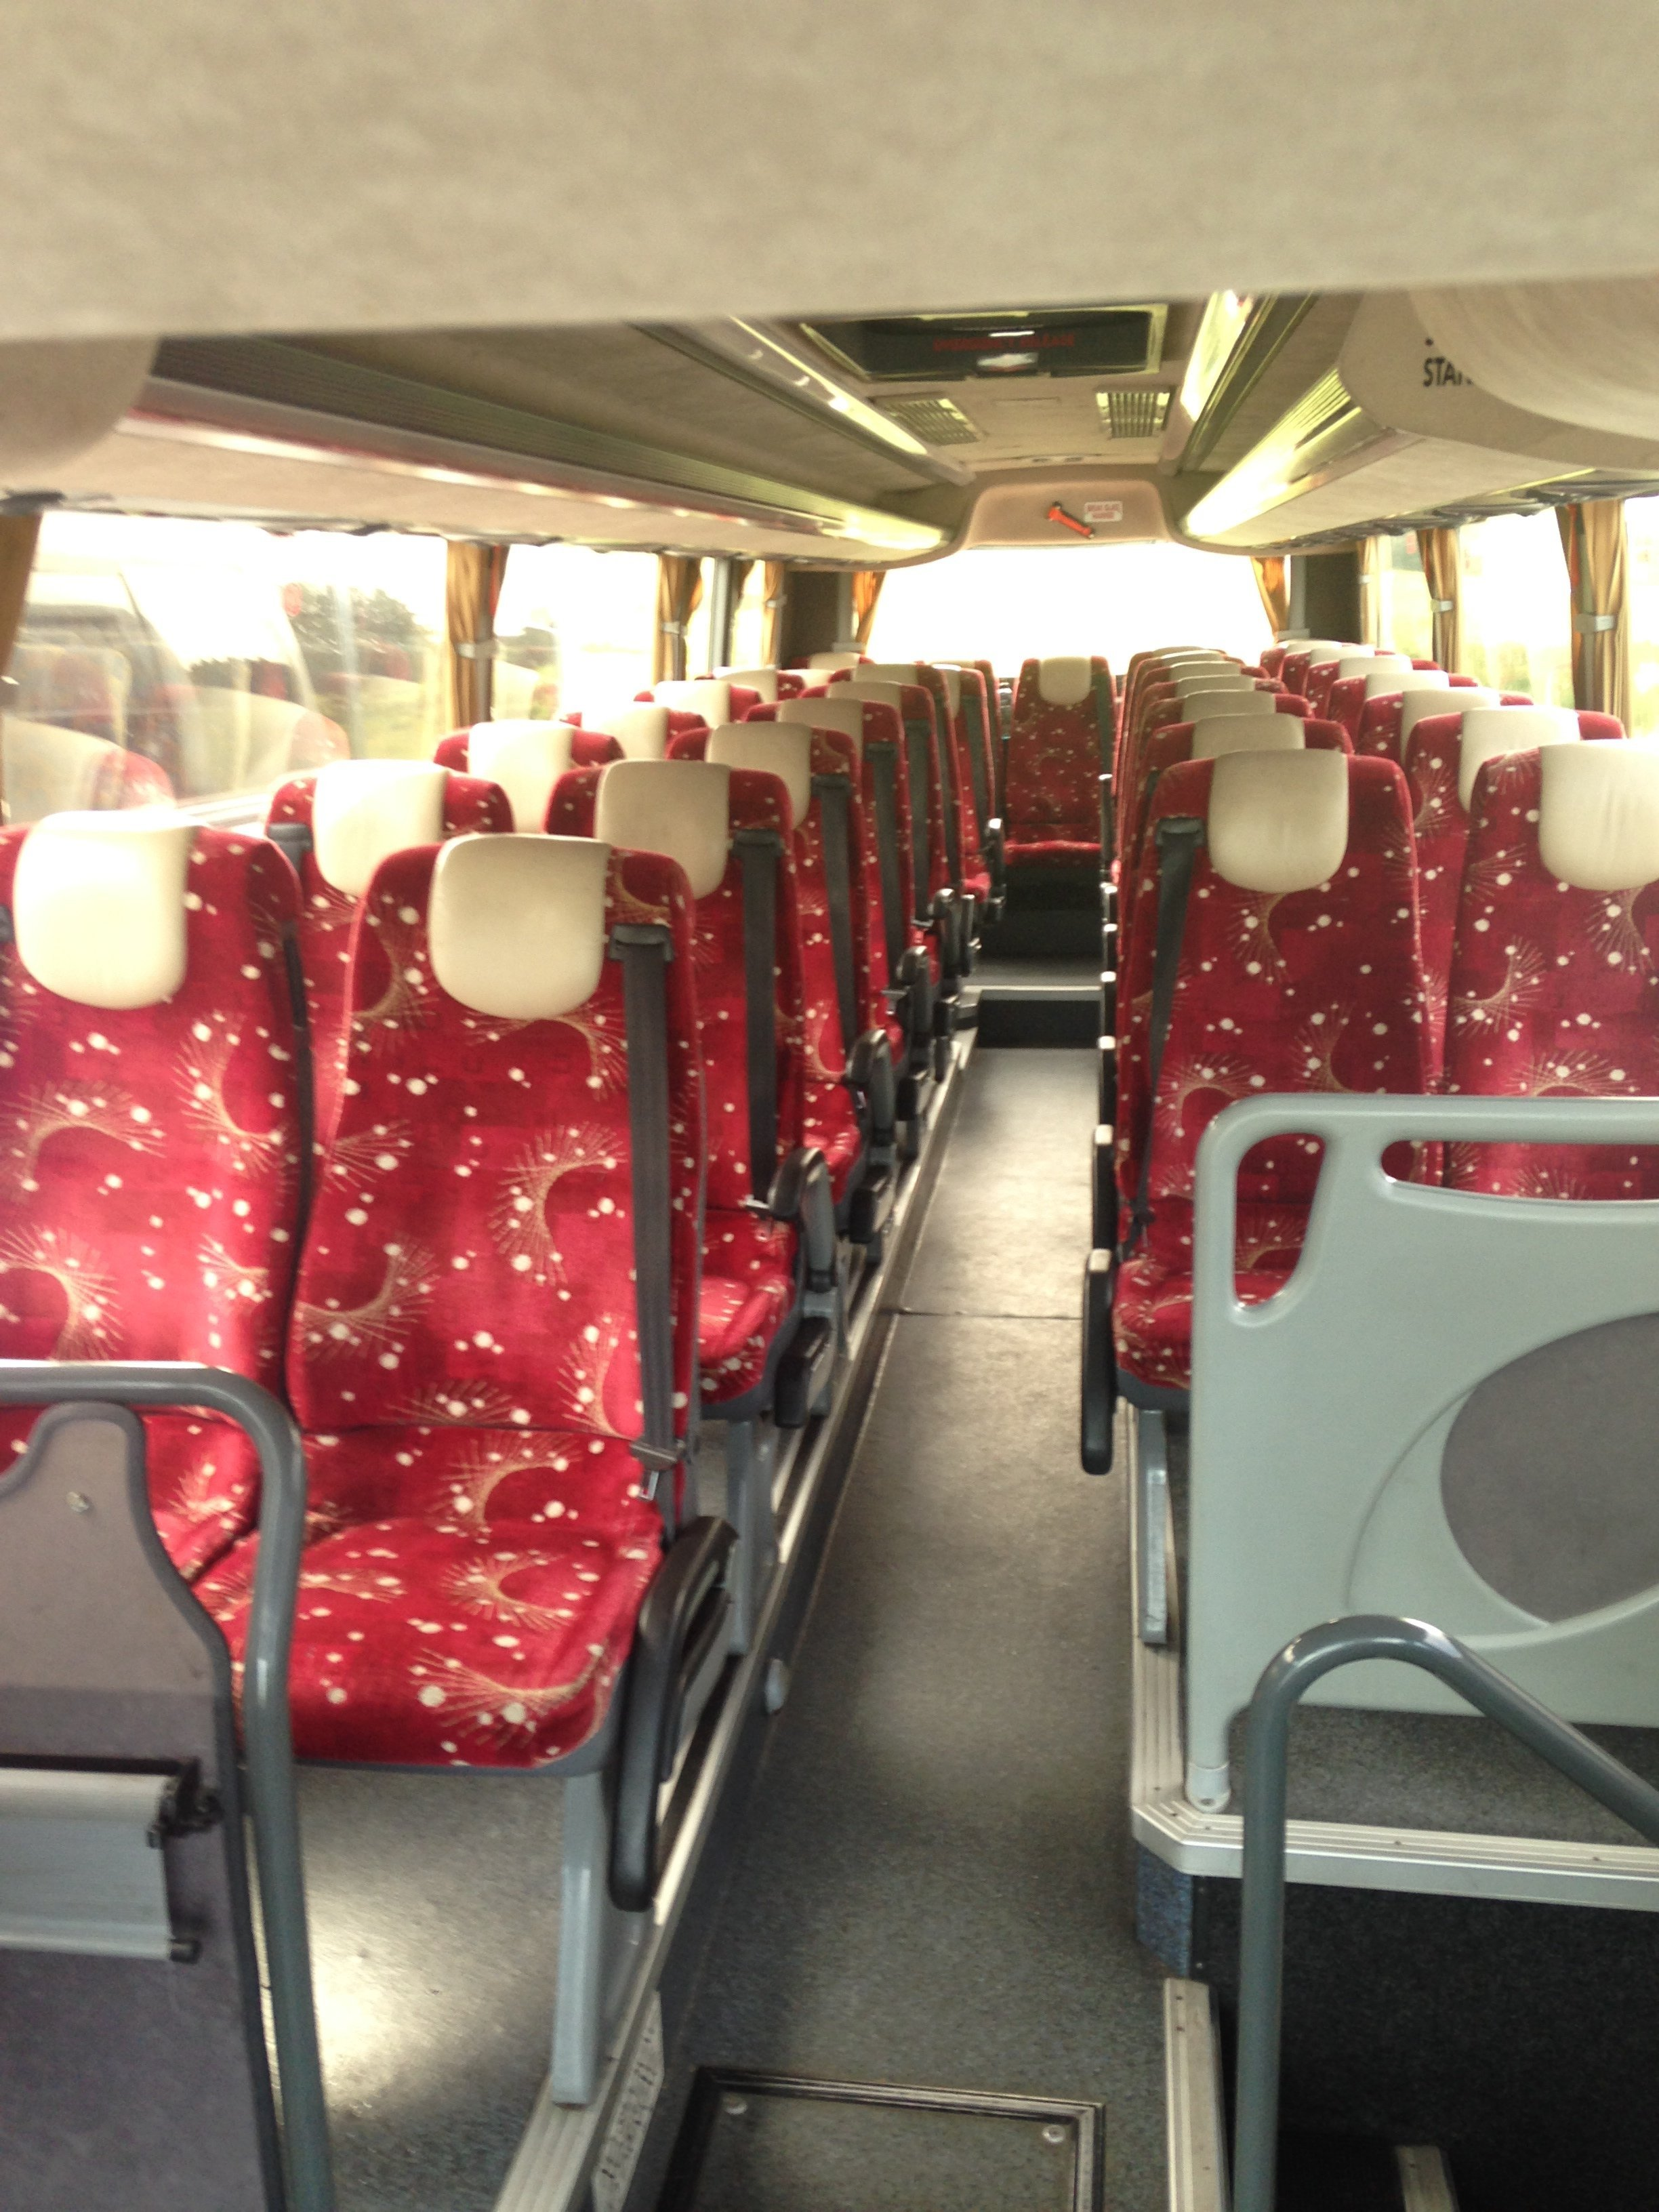 seats inside the bus